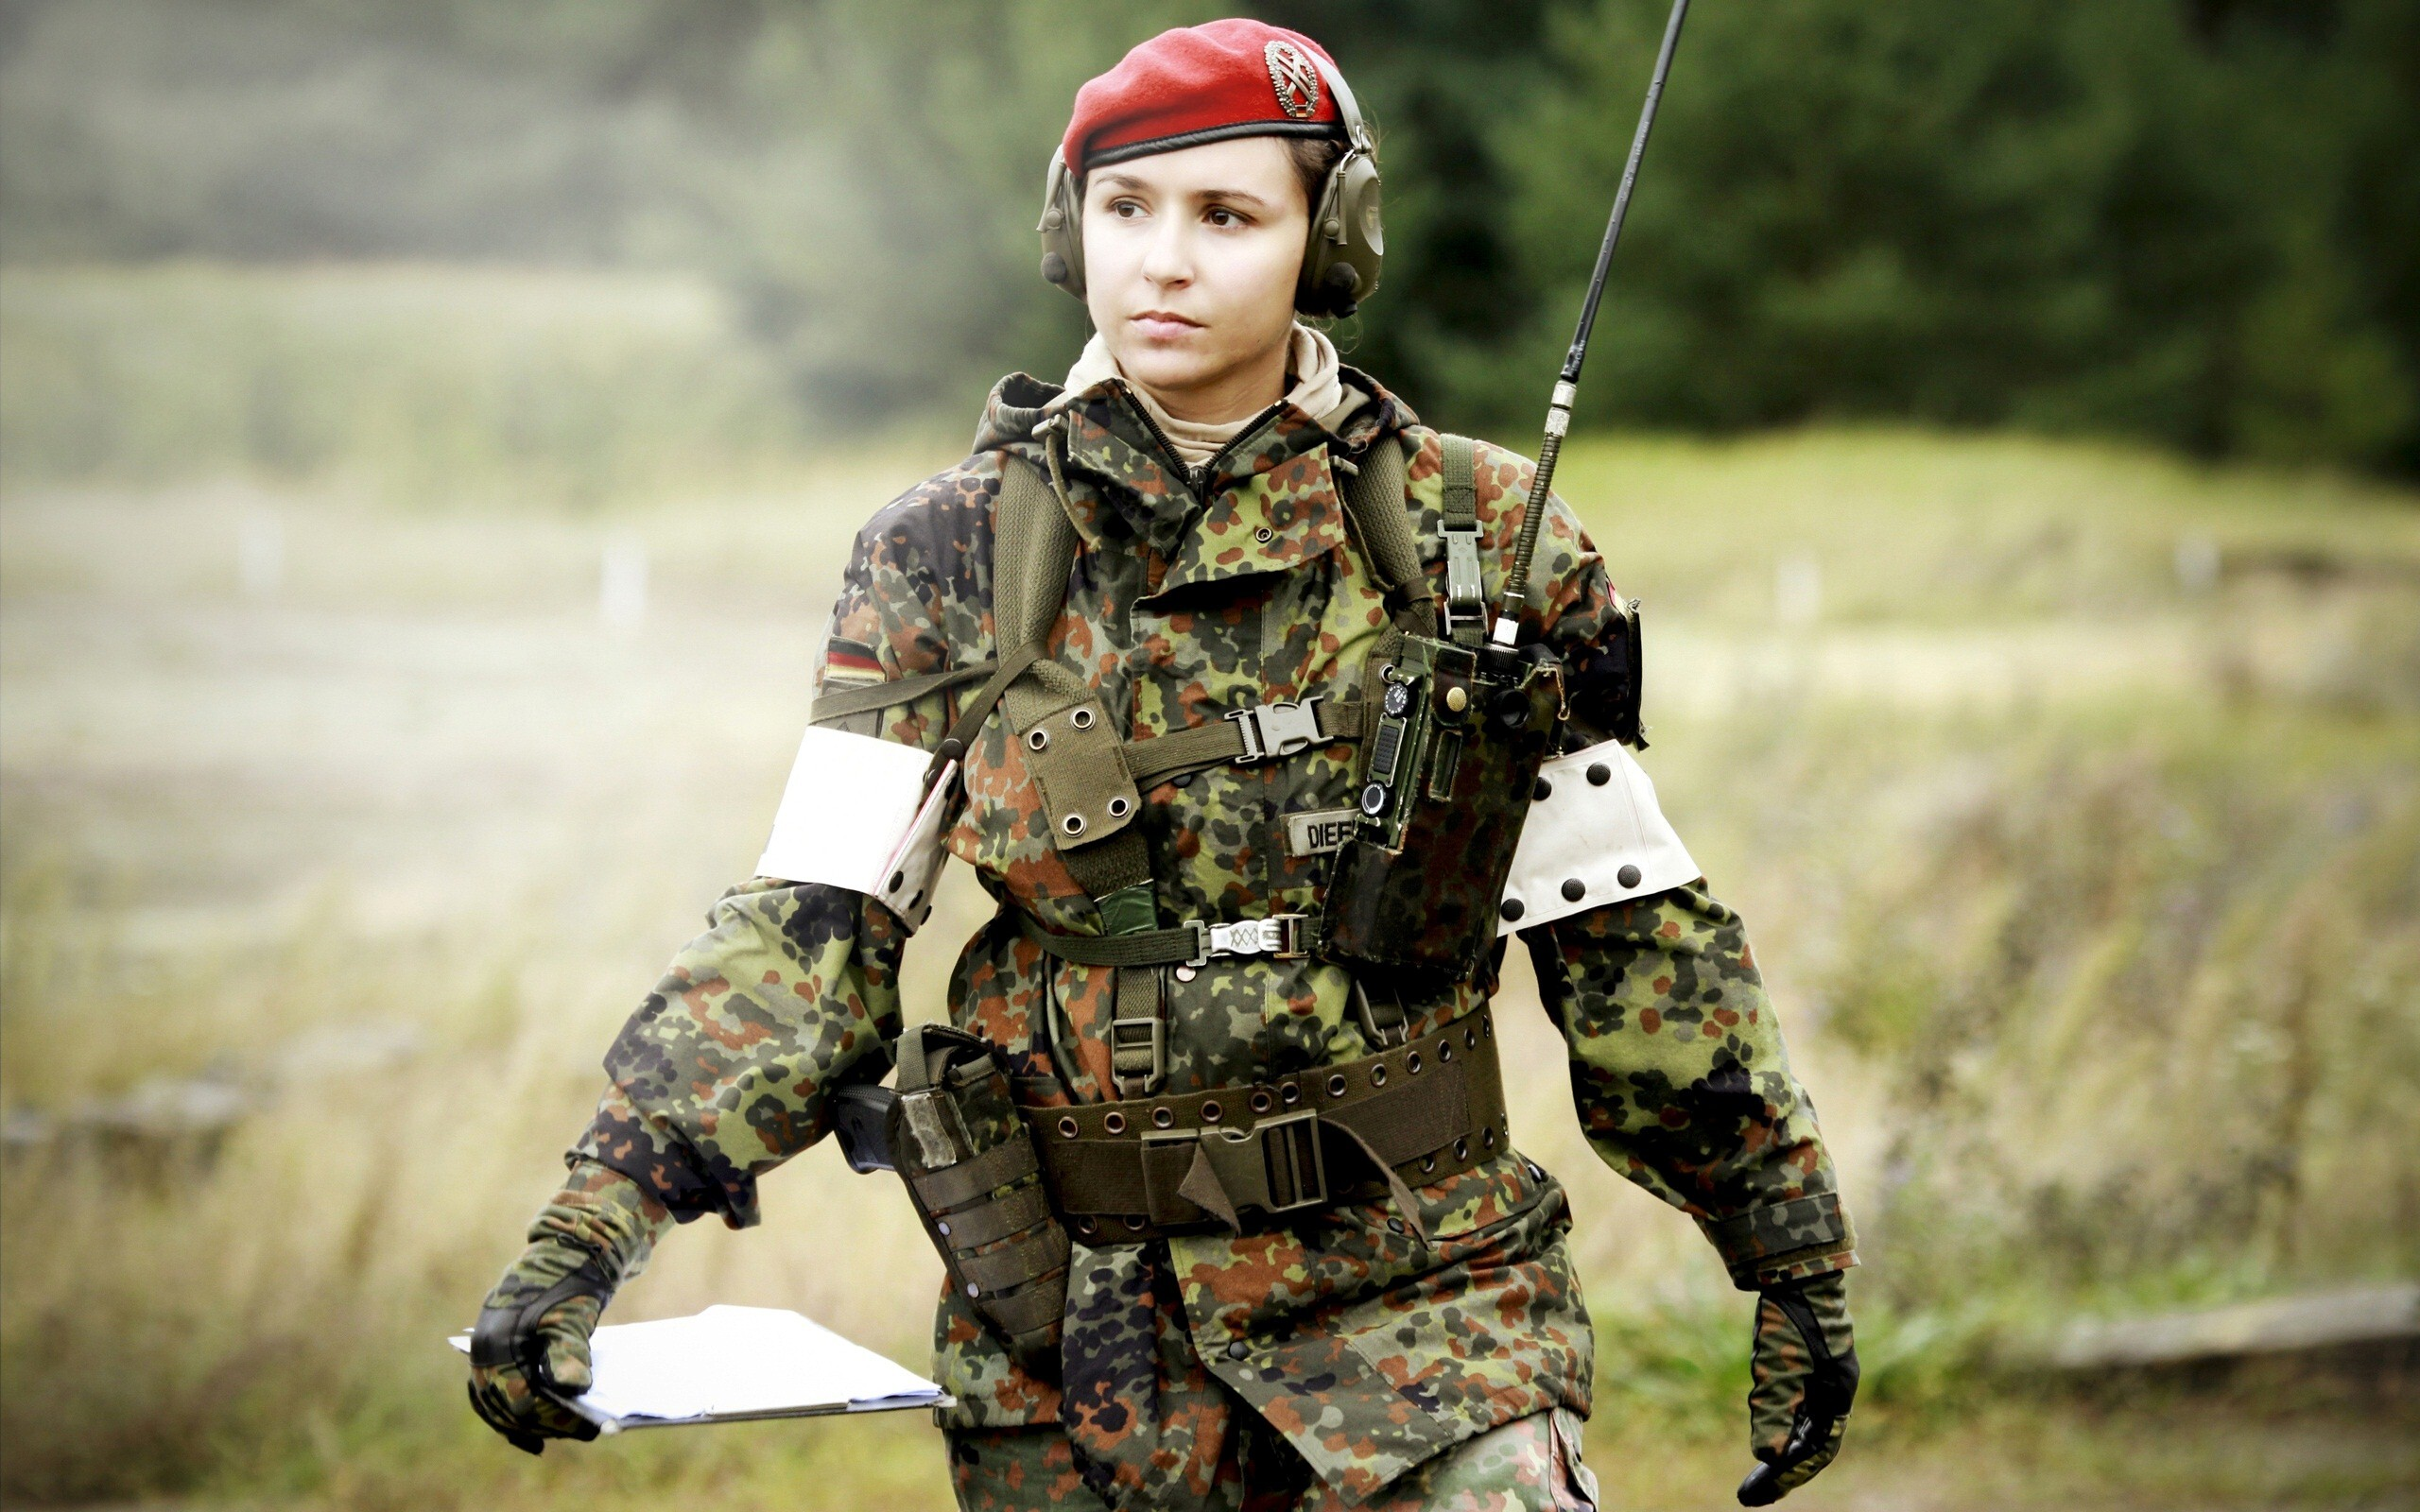 army girl with equipment high definition wallpaper | hd wallpapers